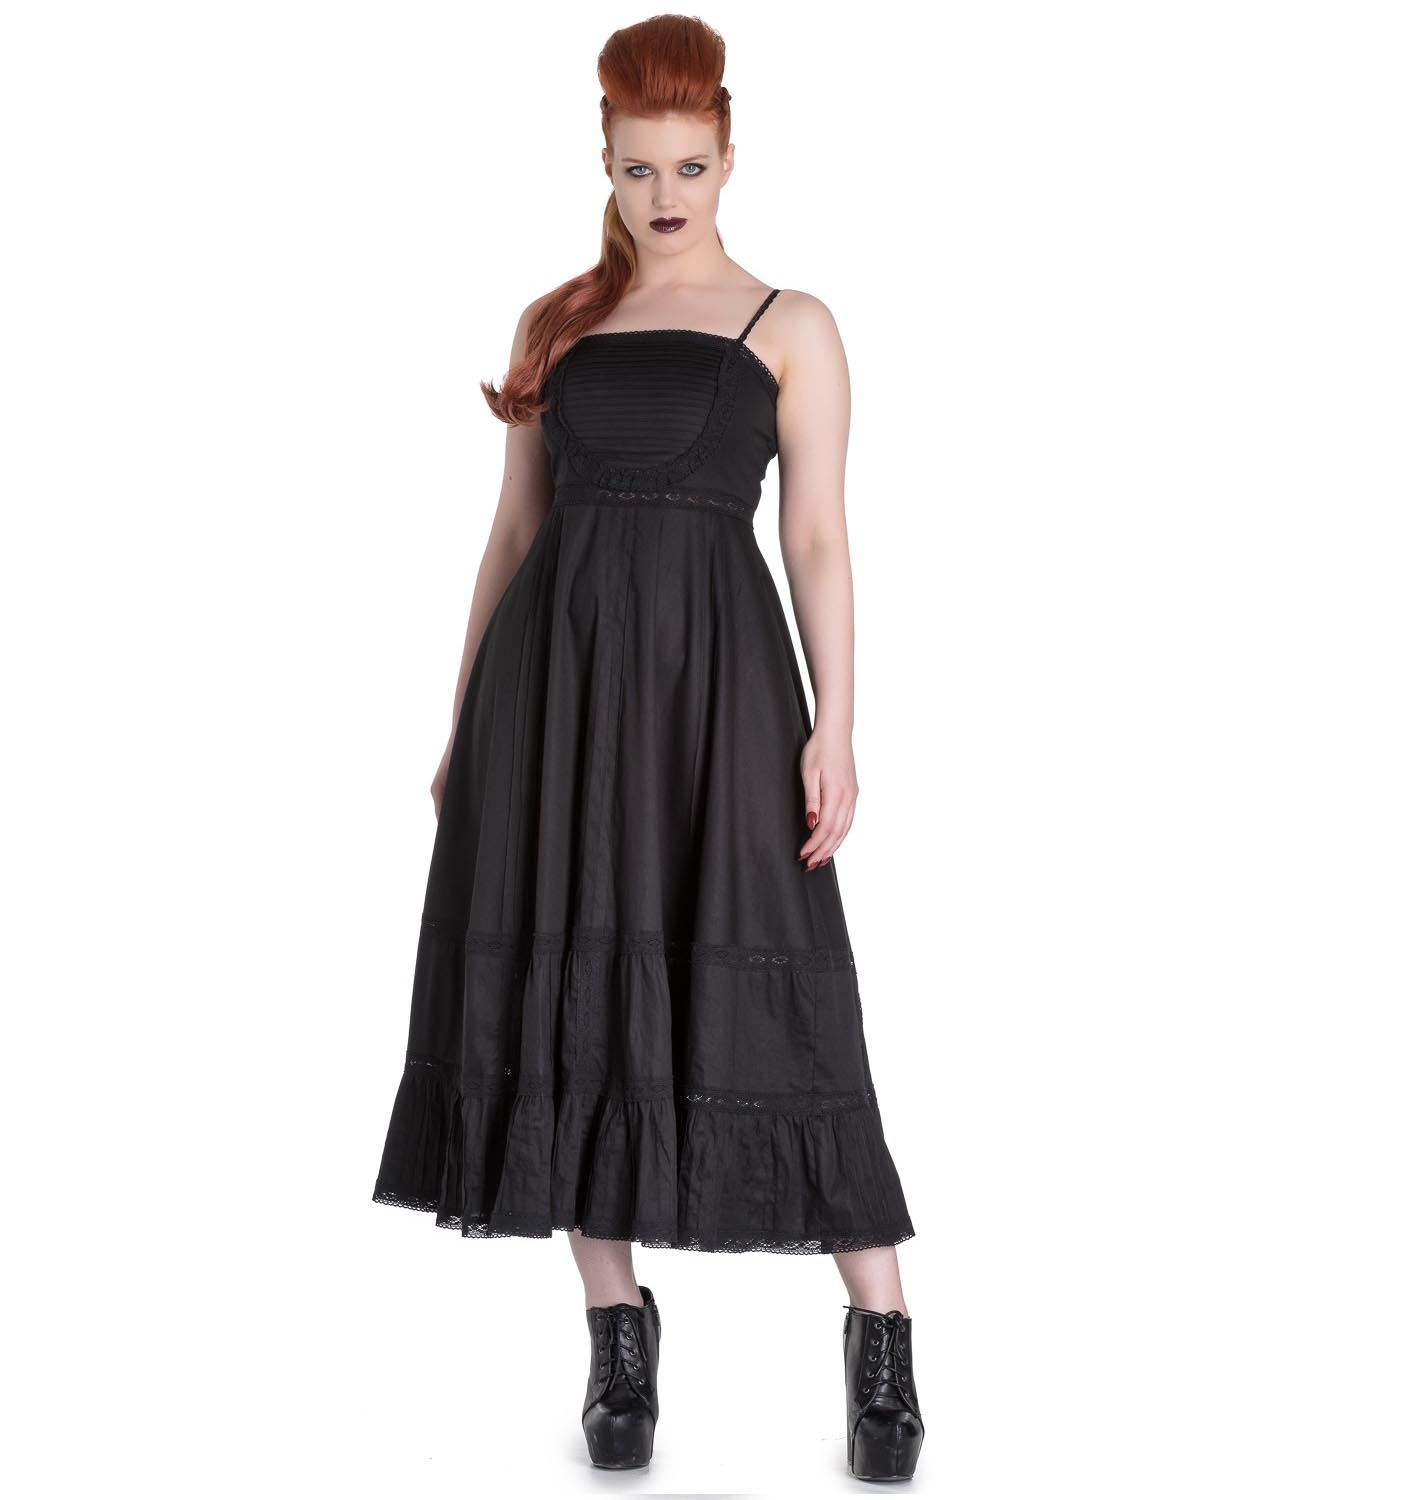 Hell-Bunny-Spin-Doctor-Goth-Maxi-Dress-ELIZABELLA-Black-All-Sizes thumbnail 3